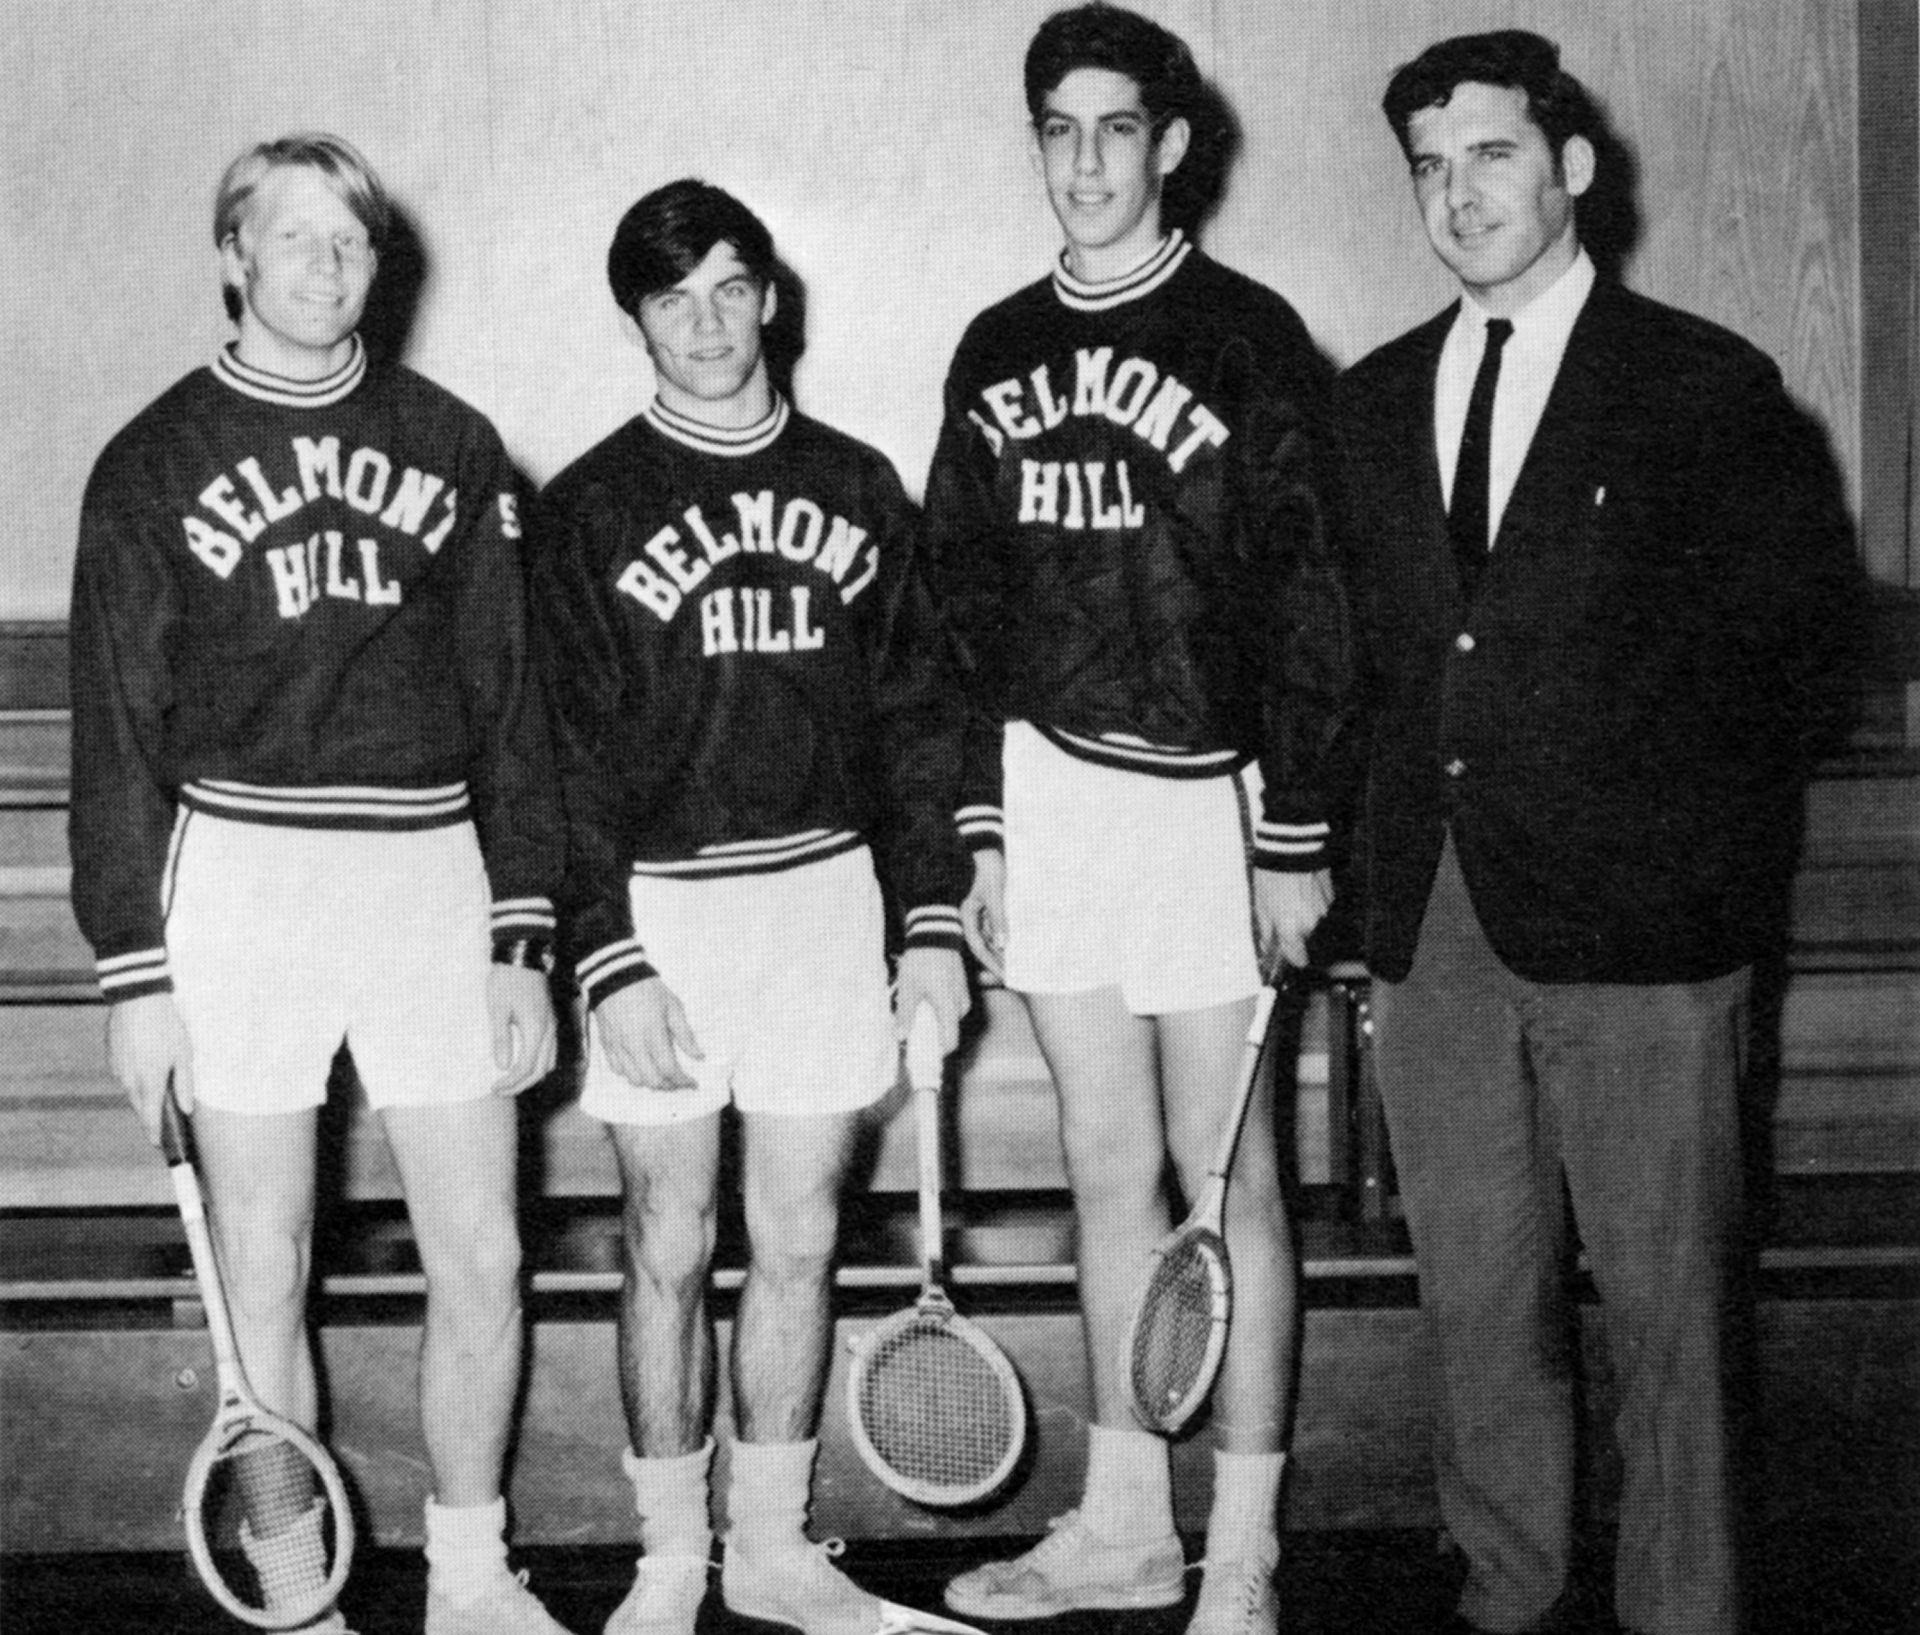 John Samuelson, Captain George Henderson, Richard Leventhal, Mr. Seeley